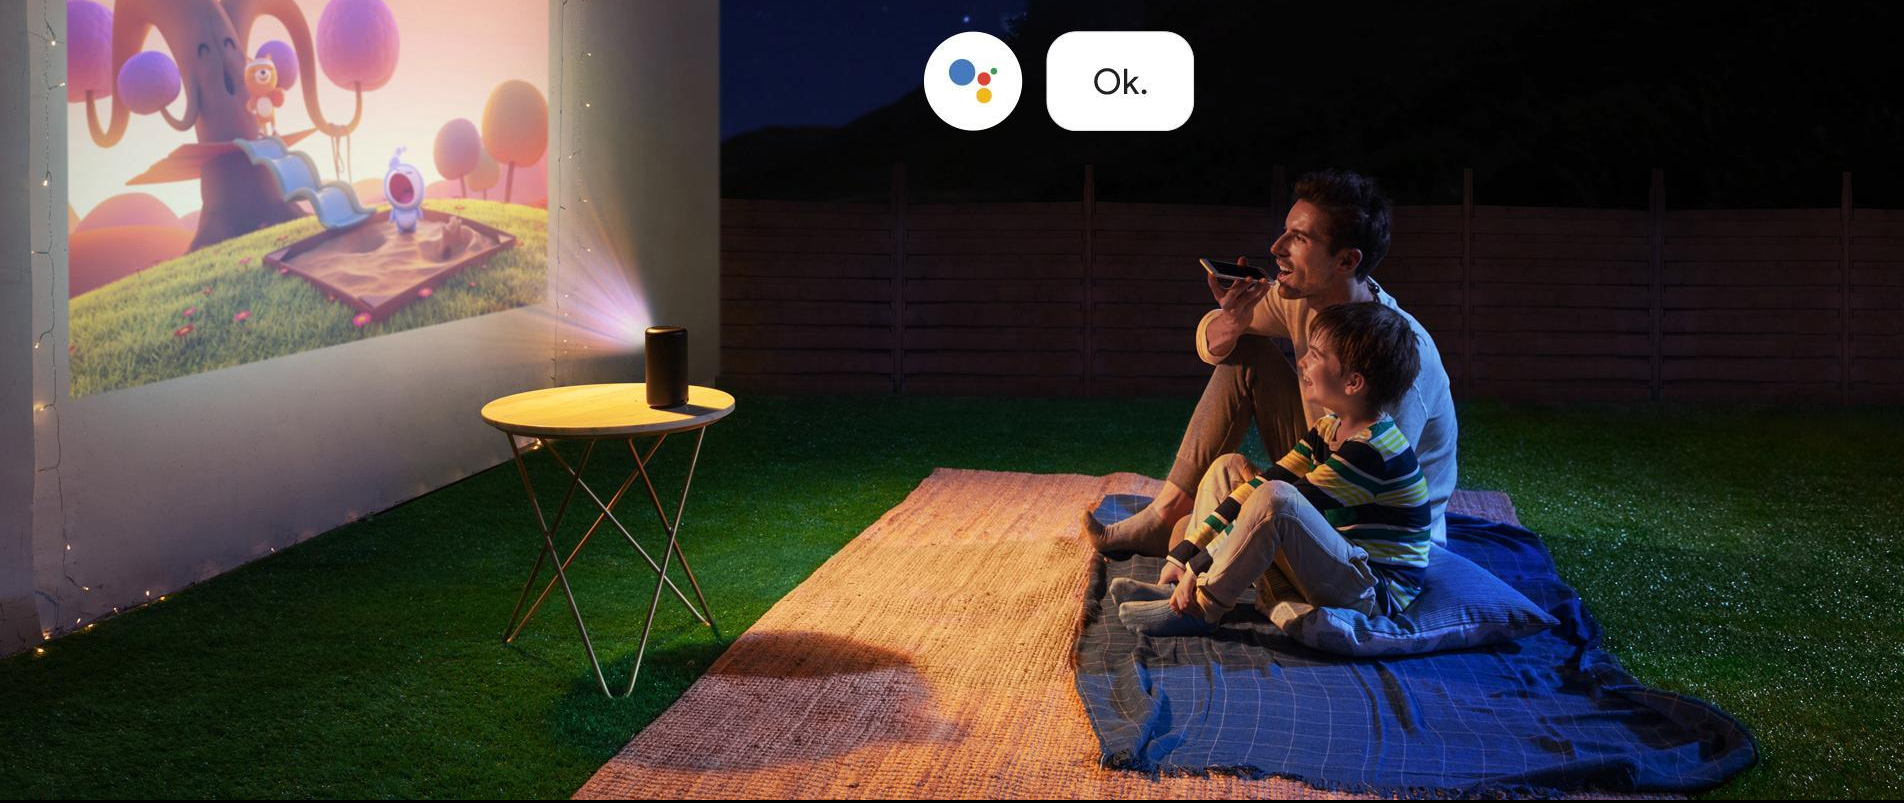 Watch movies anywhere with the Nebula Capsule by Anker. The Smart Wi-Fi Mini Projector